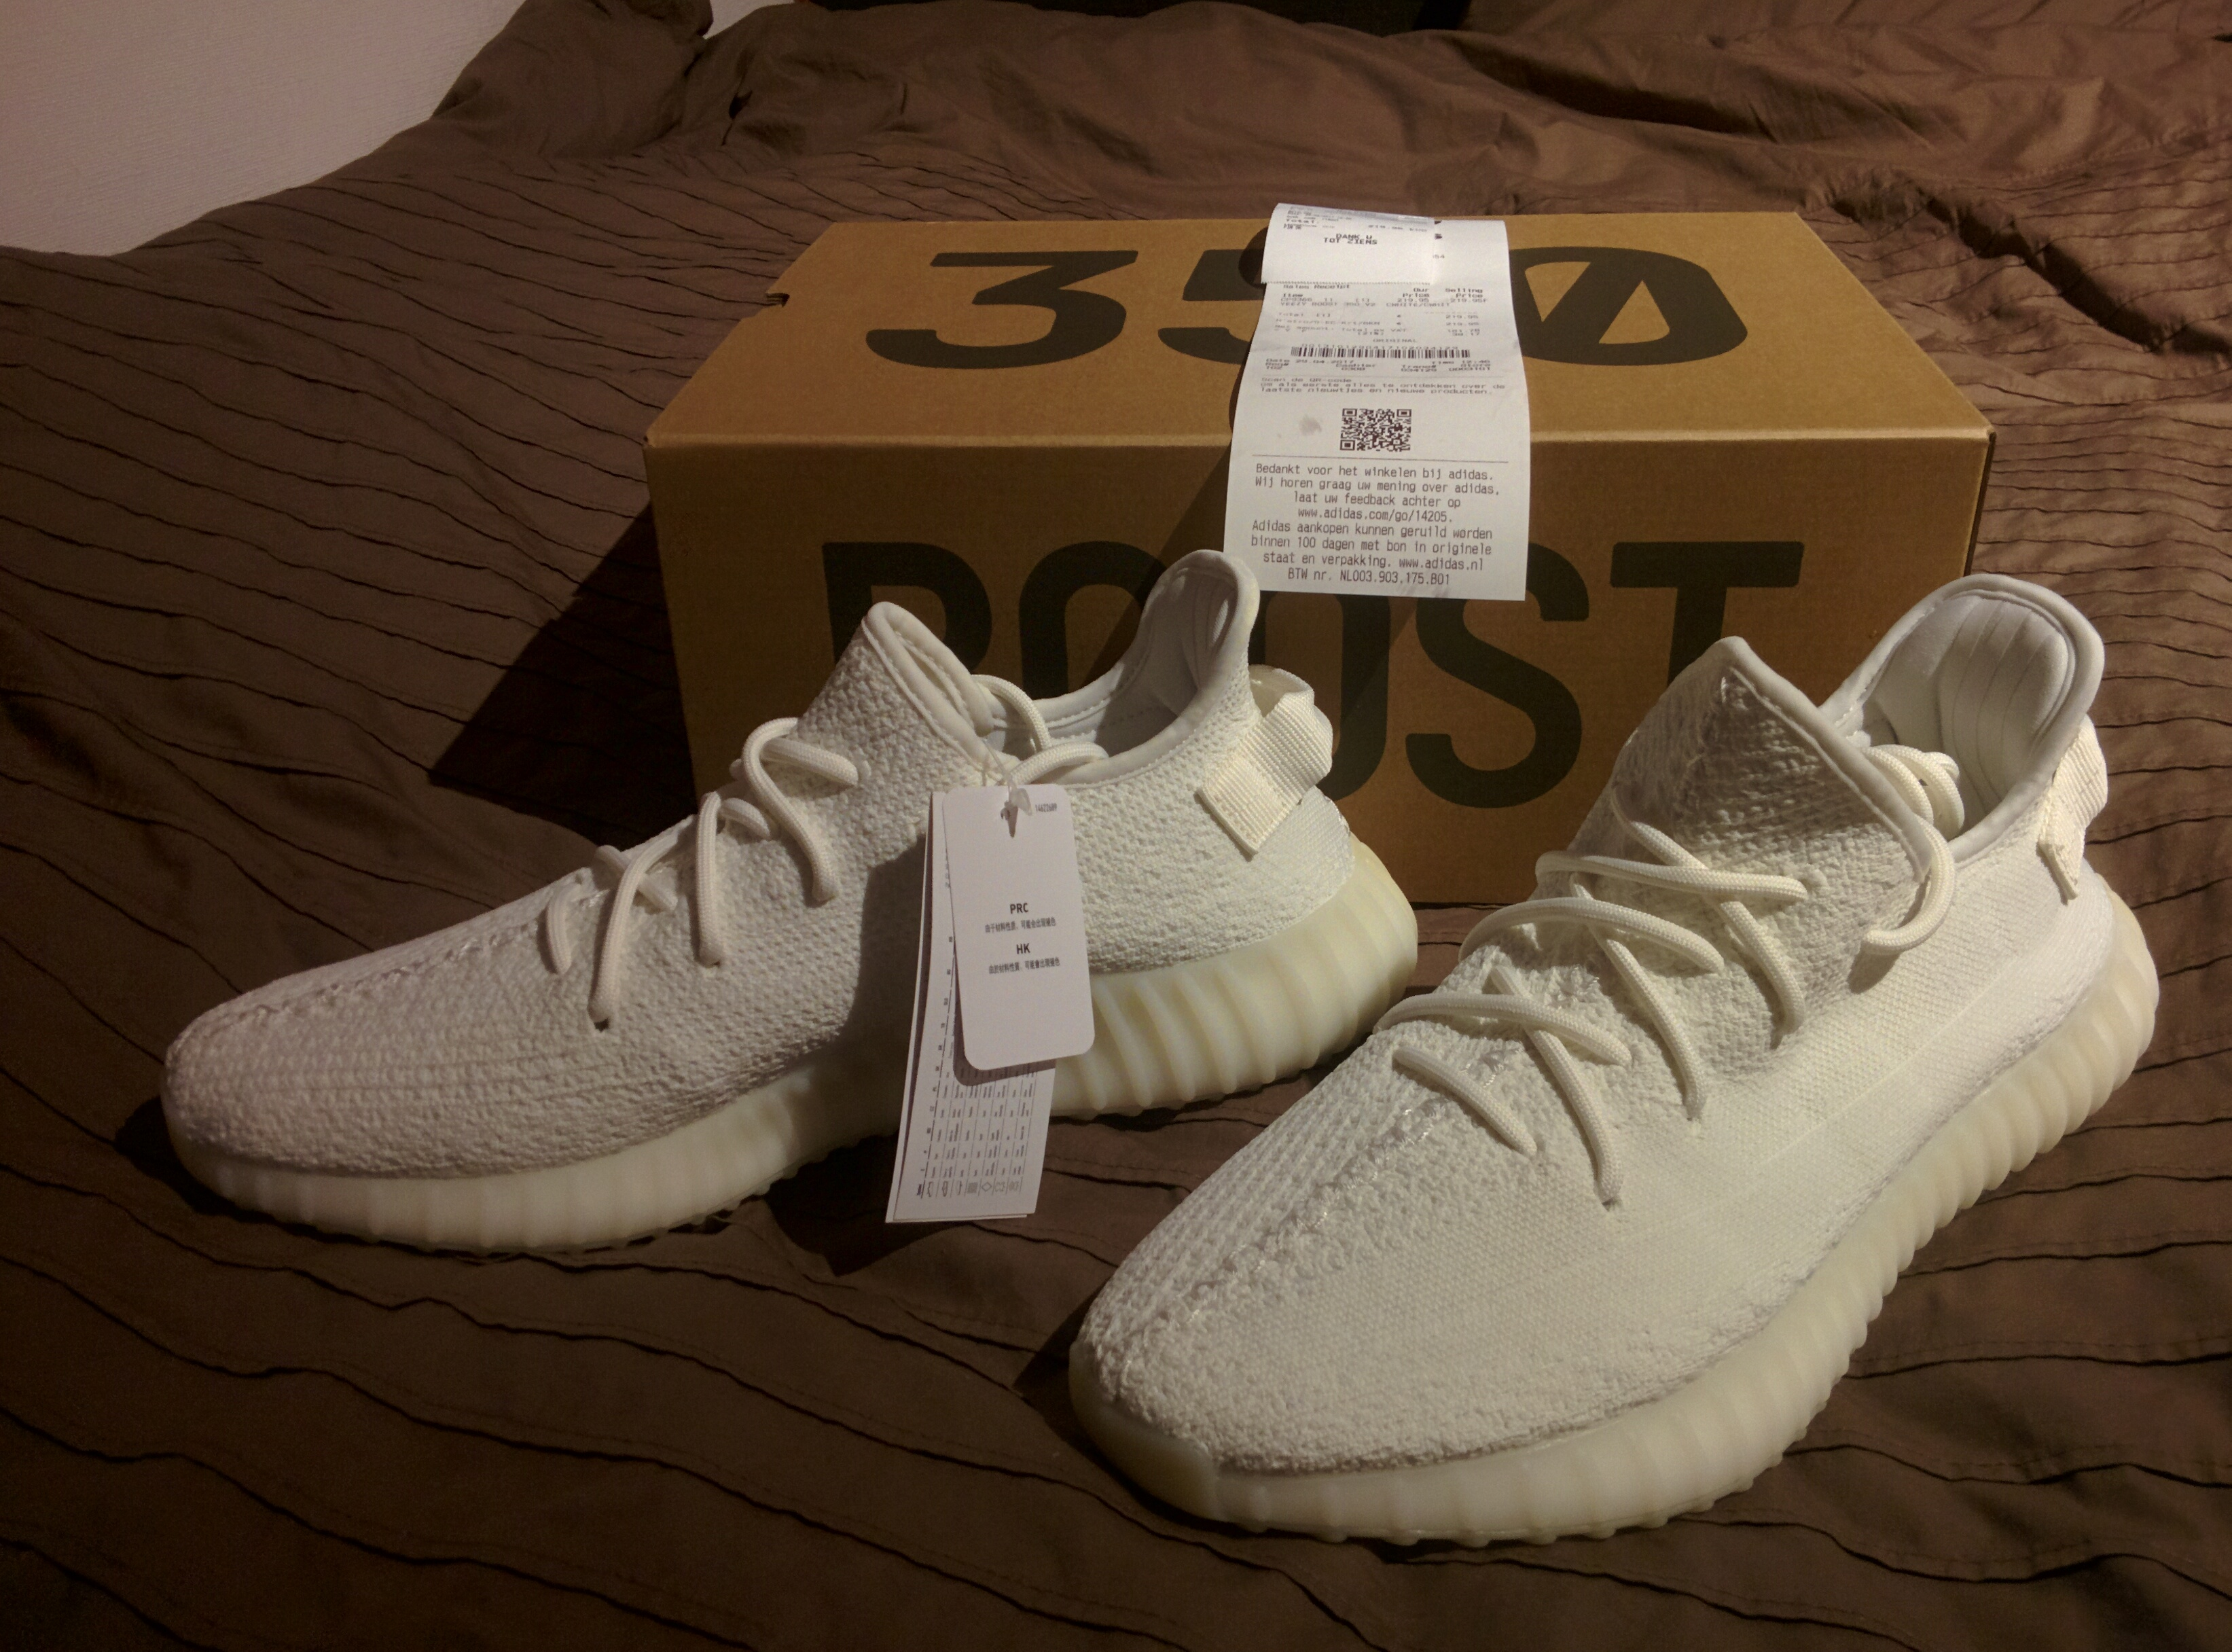 cddea8617 Yeezy Boost Yeezy Boost 350 V2 Cream White (US11.5) Size 11.5 - Low ...